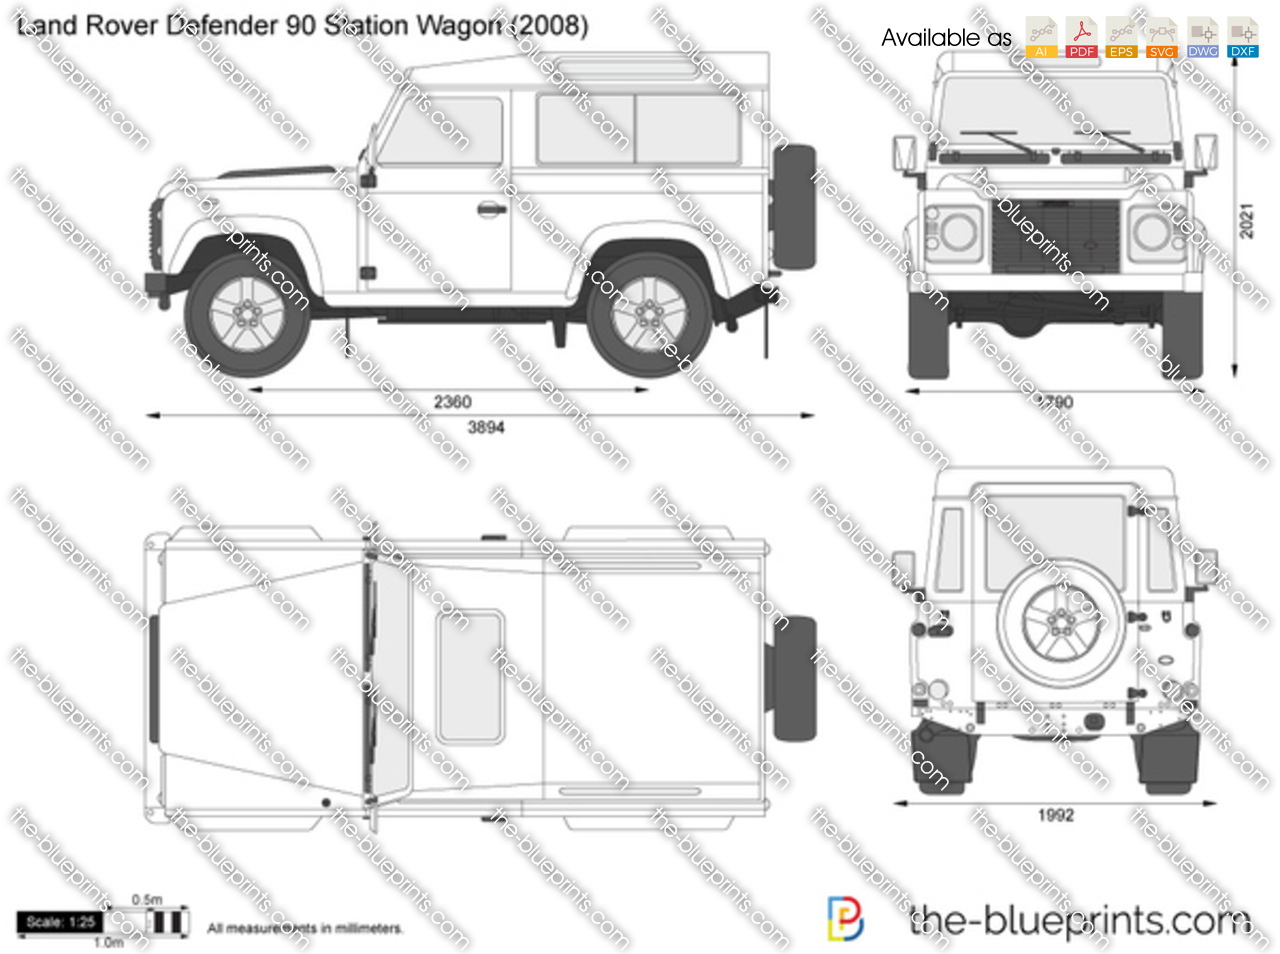 Land Rover Defender 90 Station Wagon 2004